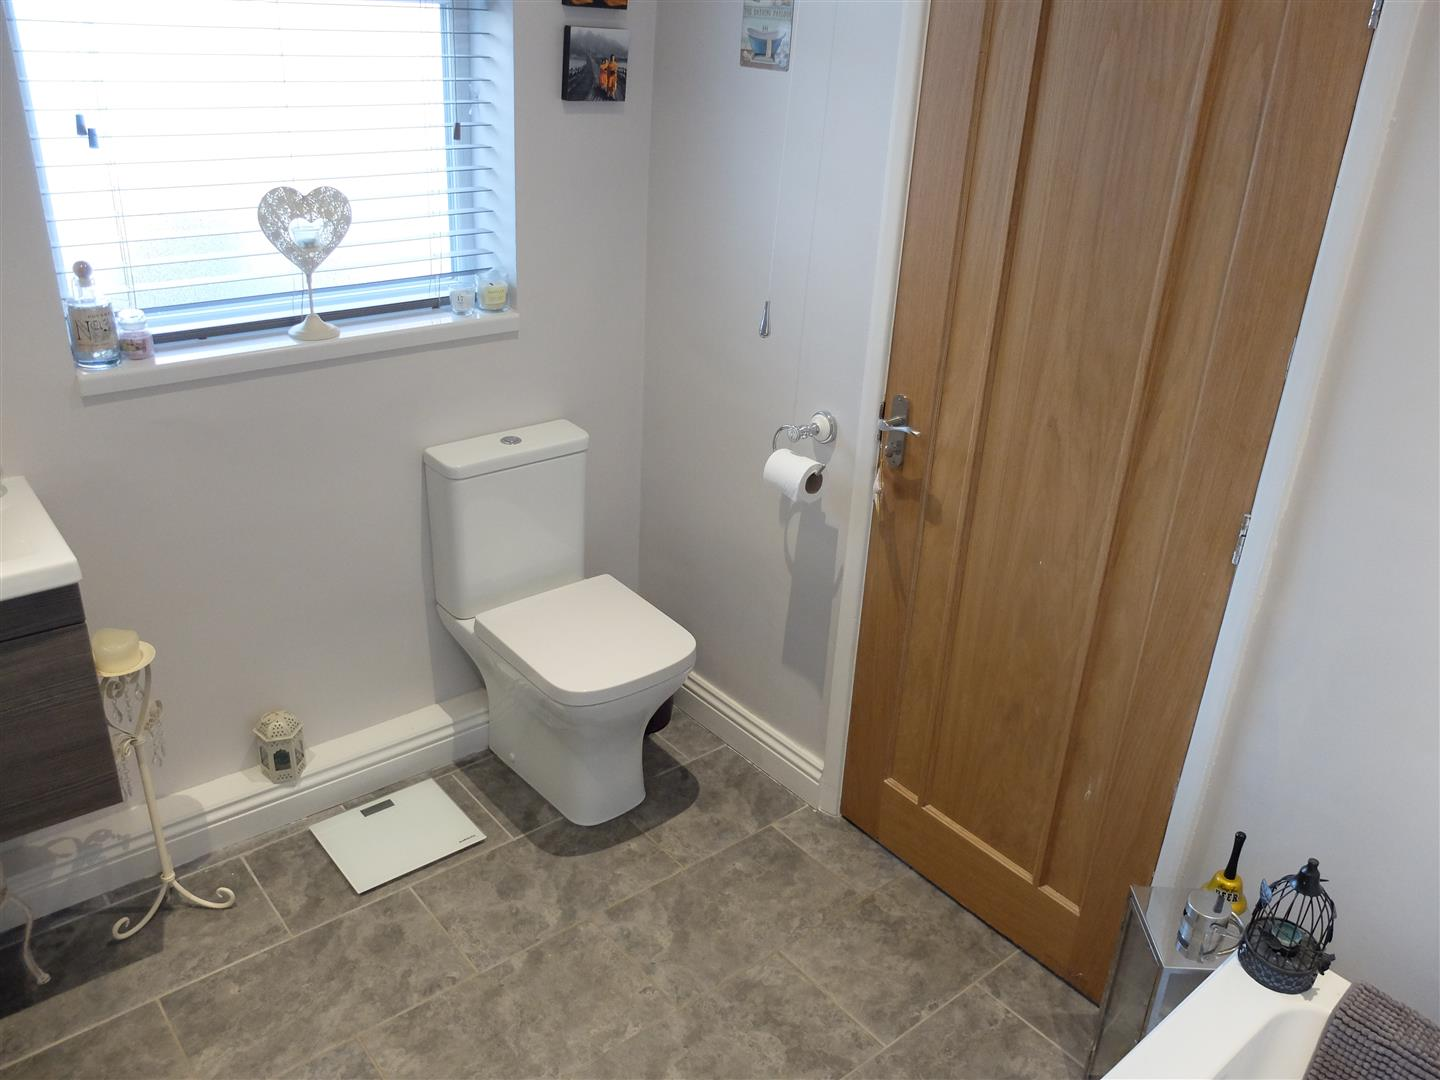 2 Bedrooms House - Mid Terrace For Sale 1 Blundell Terrace Carlisle 110,000